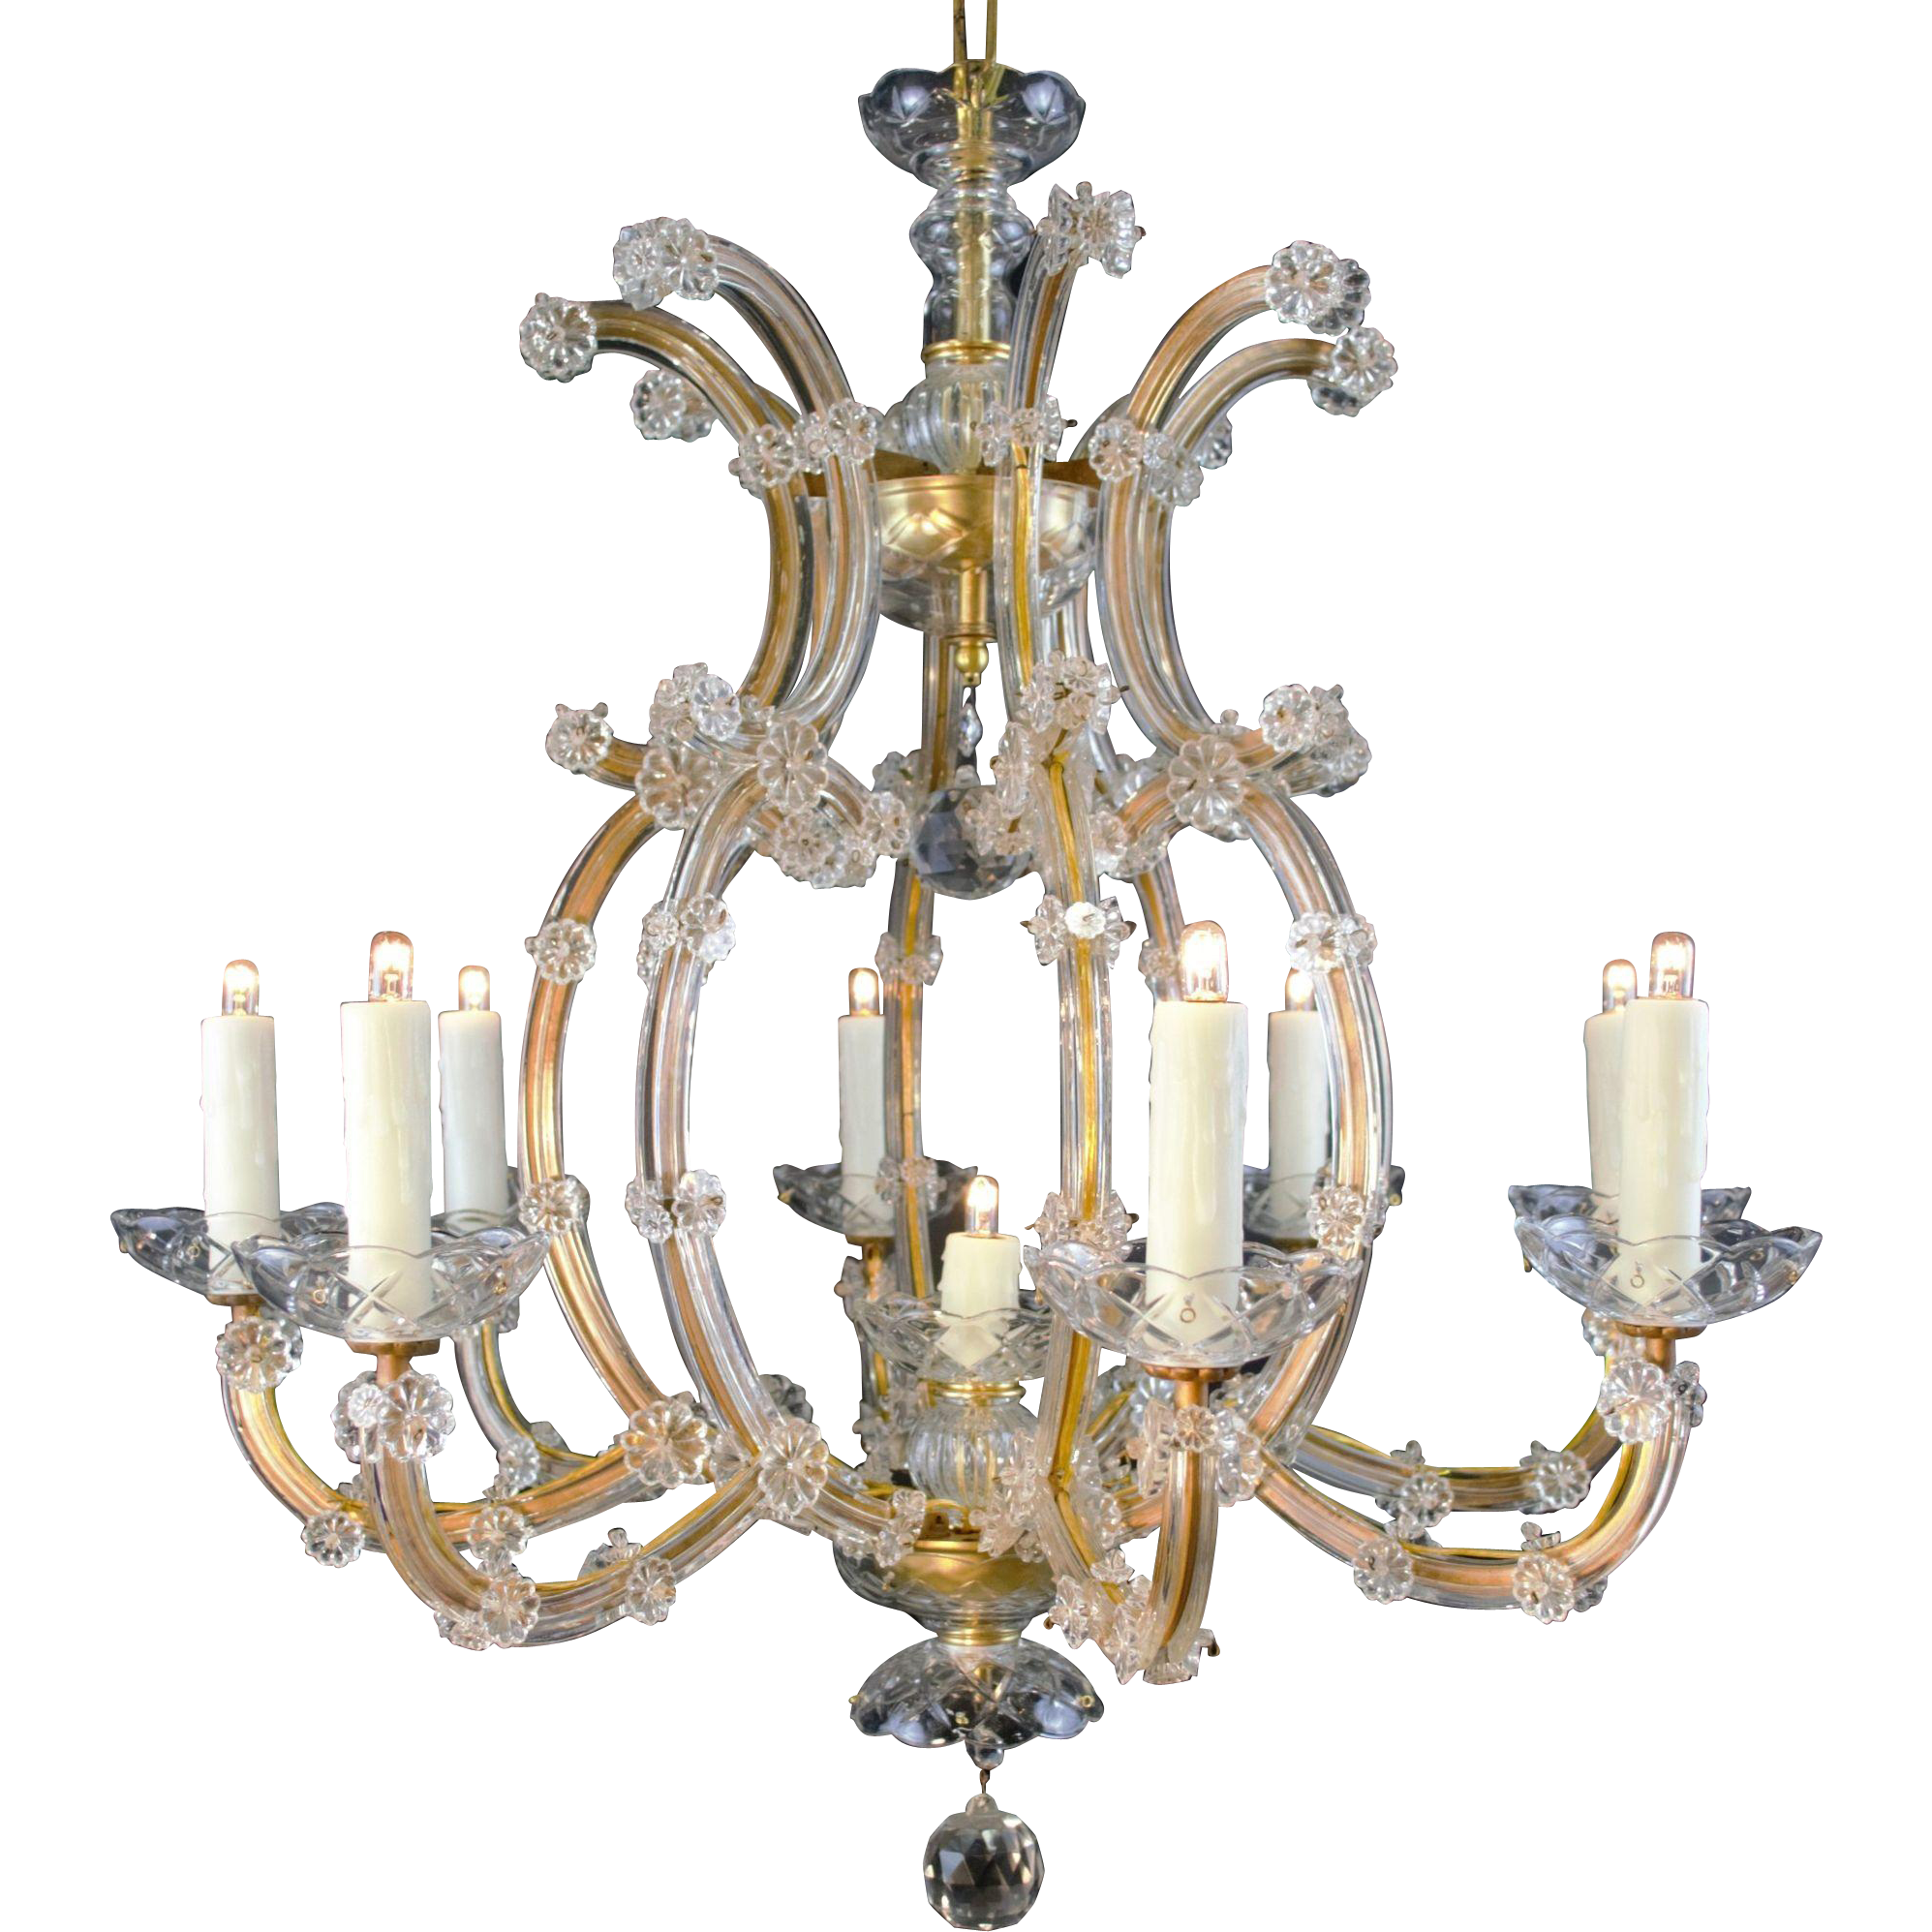 9 light maria theresa bohemian crystal chandelier from table m on 9 light maria theresa bohemian crystal chandelier arubaitofo Choice Image